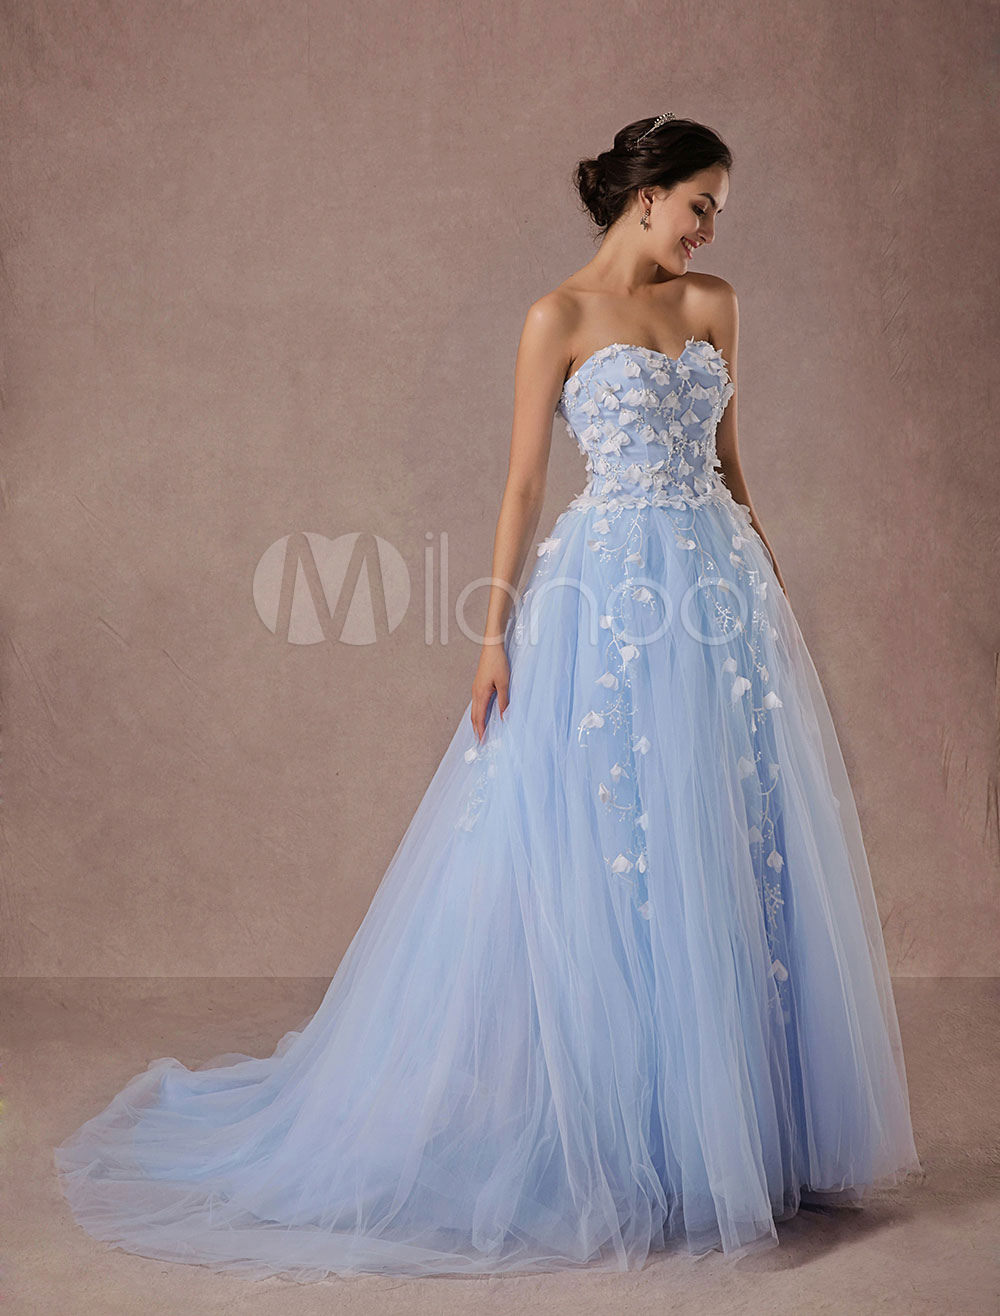 74fddaee5c Blue Wedding Dress Lace Tulle Chapel Train Bridal Gown Sweetheart Strapless  A-Line Luxury Princess Pageant Dress